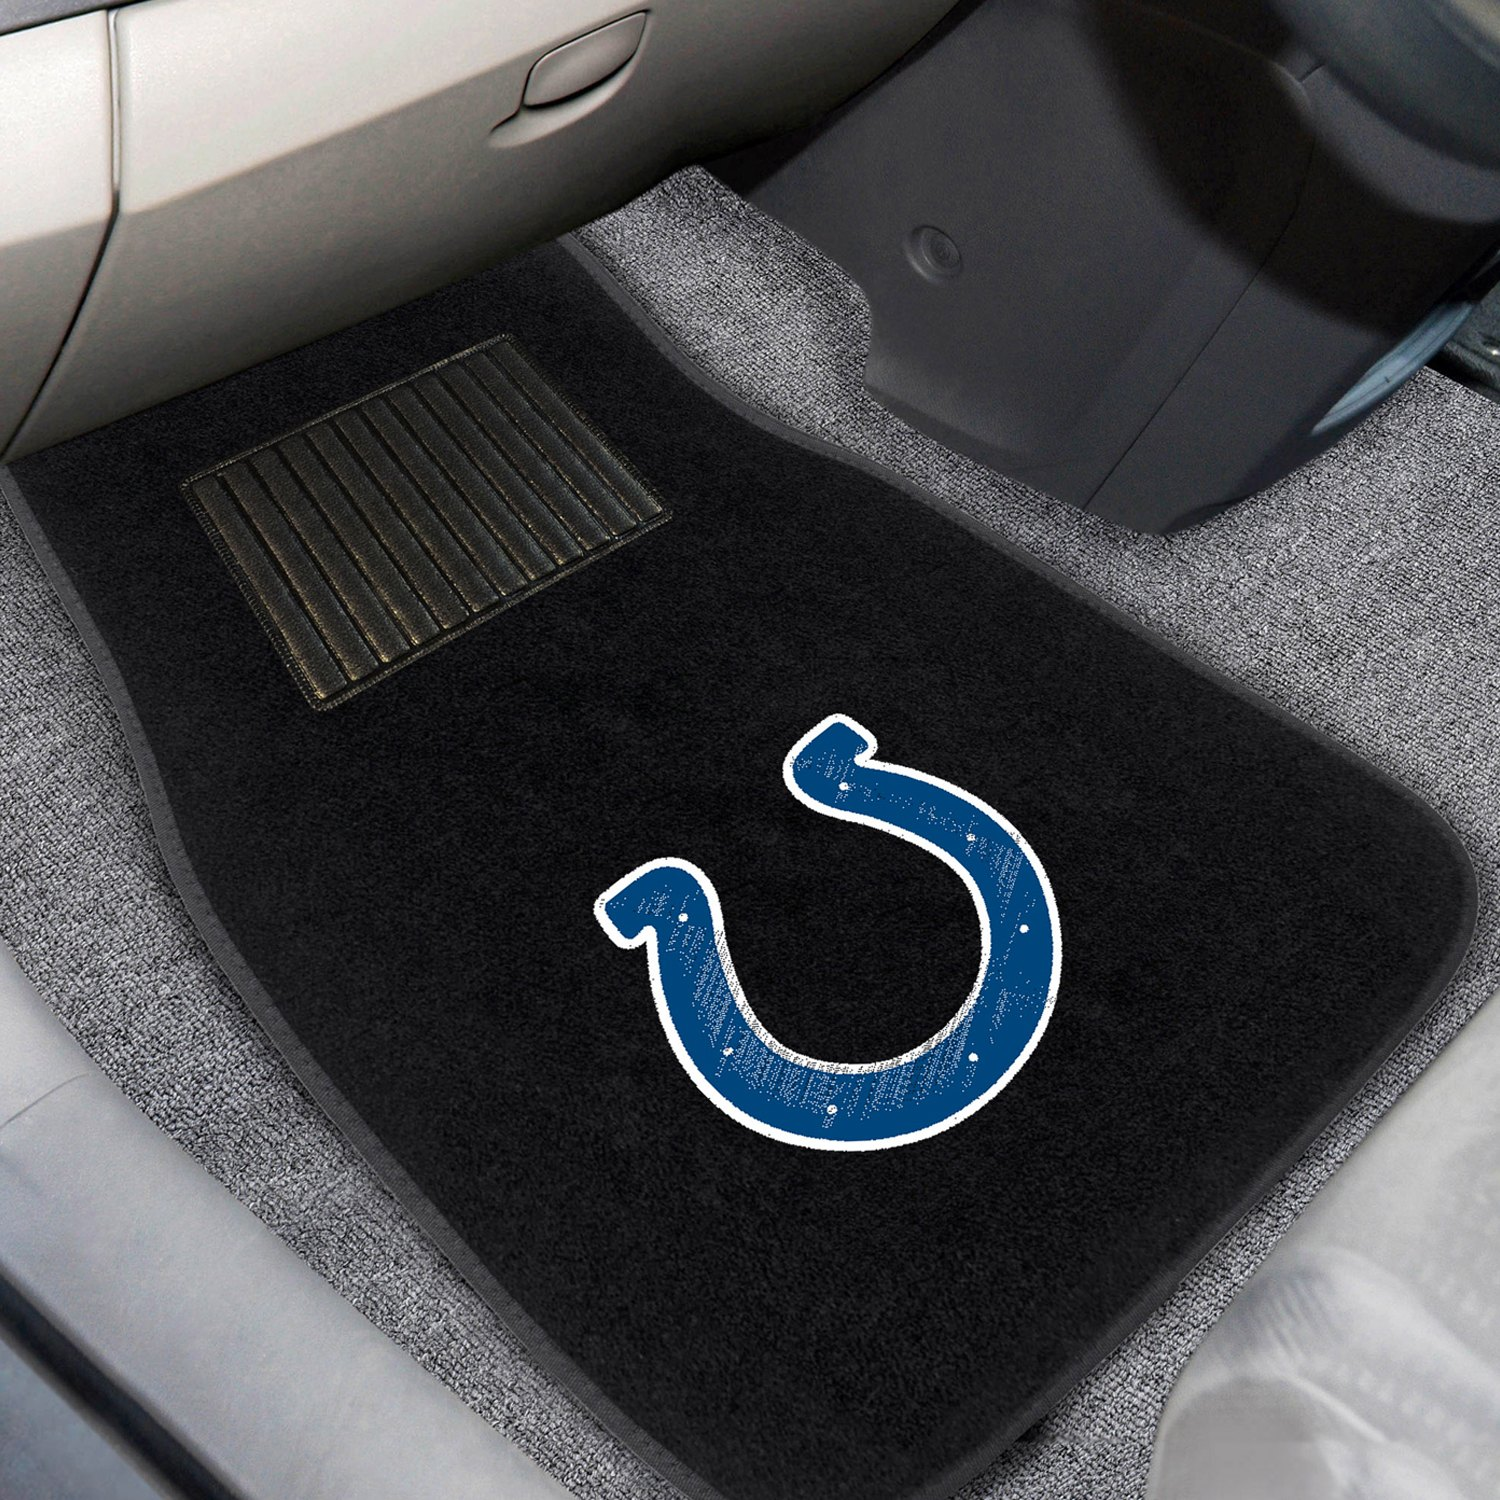 buy cheap FanMats® 10299 - Indianapolis Colts Logo on Embroidered Floor Mats for 2015 RAM 1500 TRUCK Ebay & Amazon